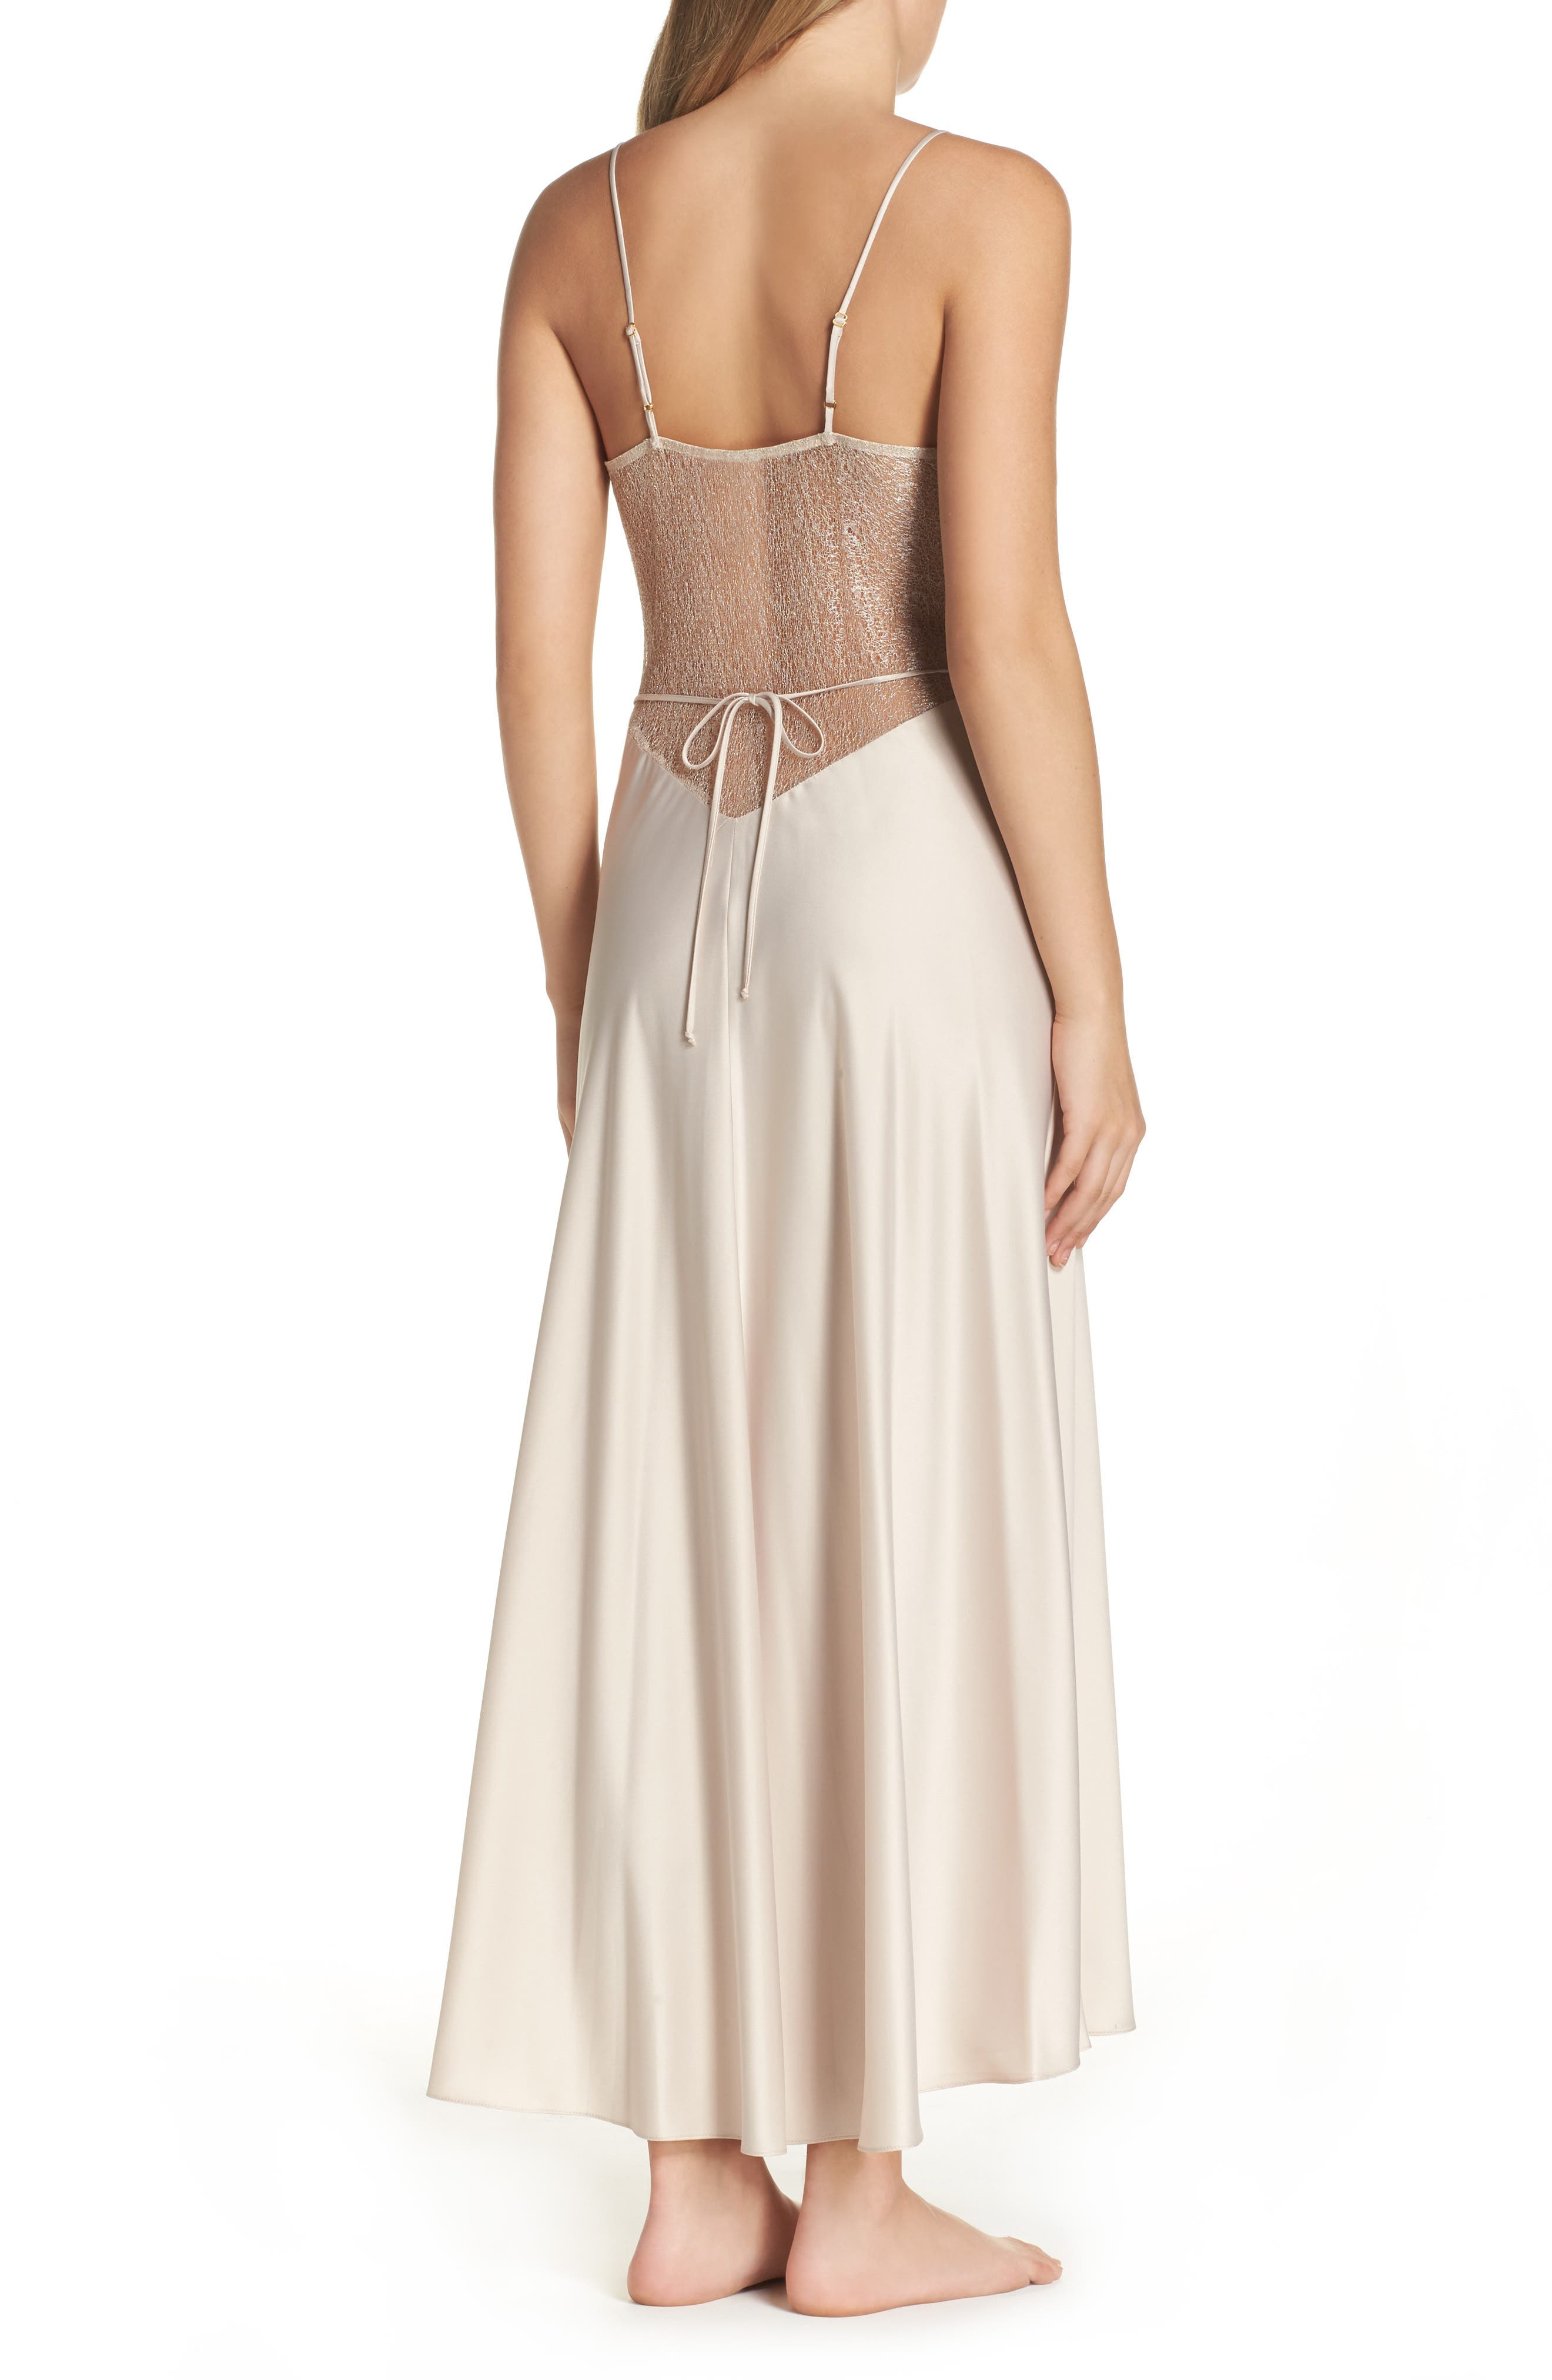 FLORA NIKROOZ, Showstopper Nightgown, Alternate thumbnail 3, color, CHAMPAGNE